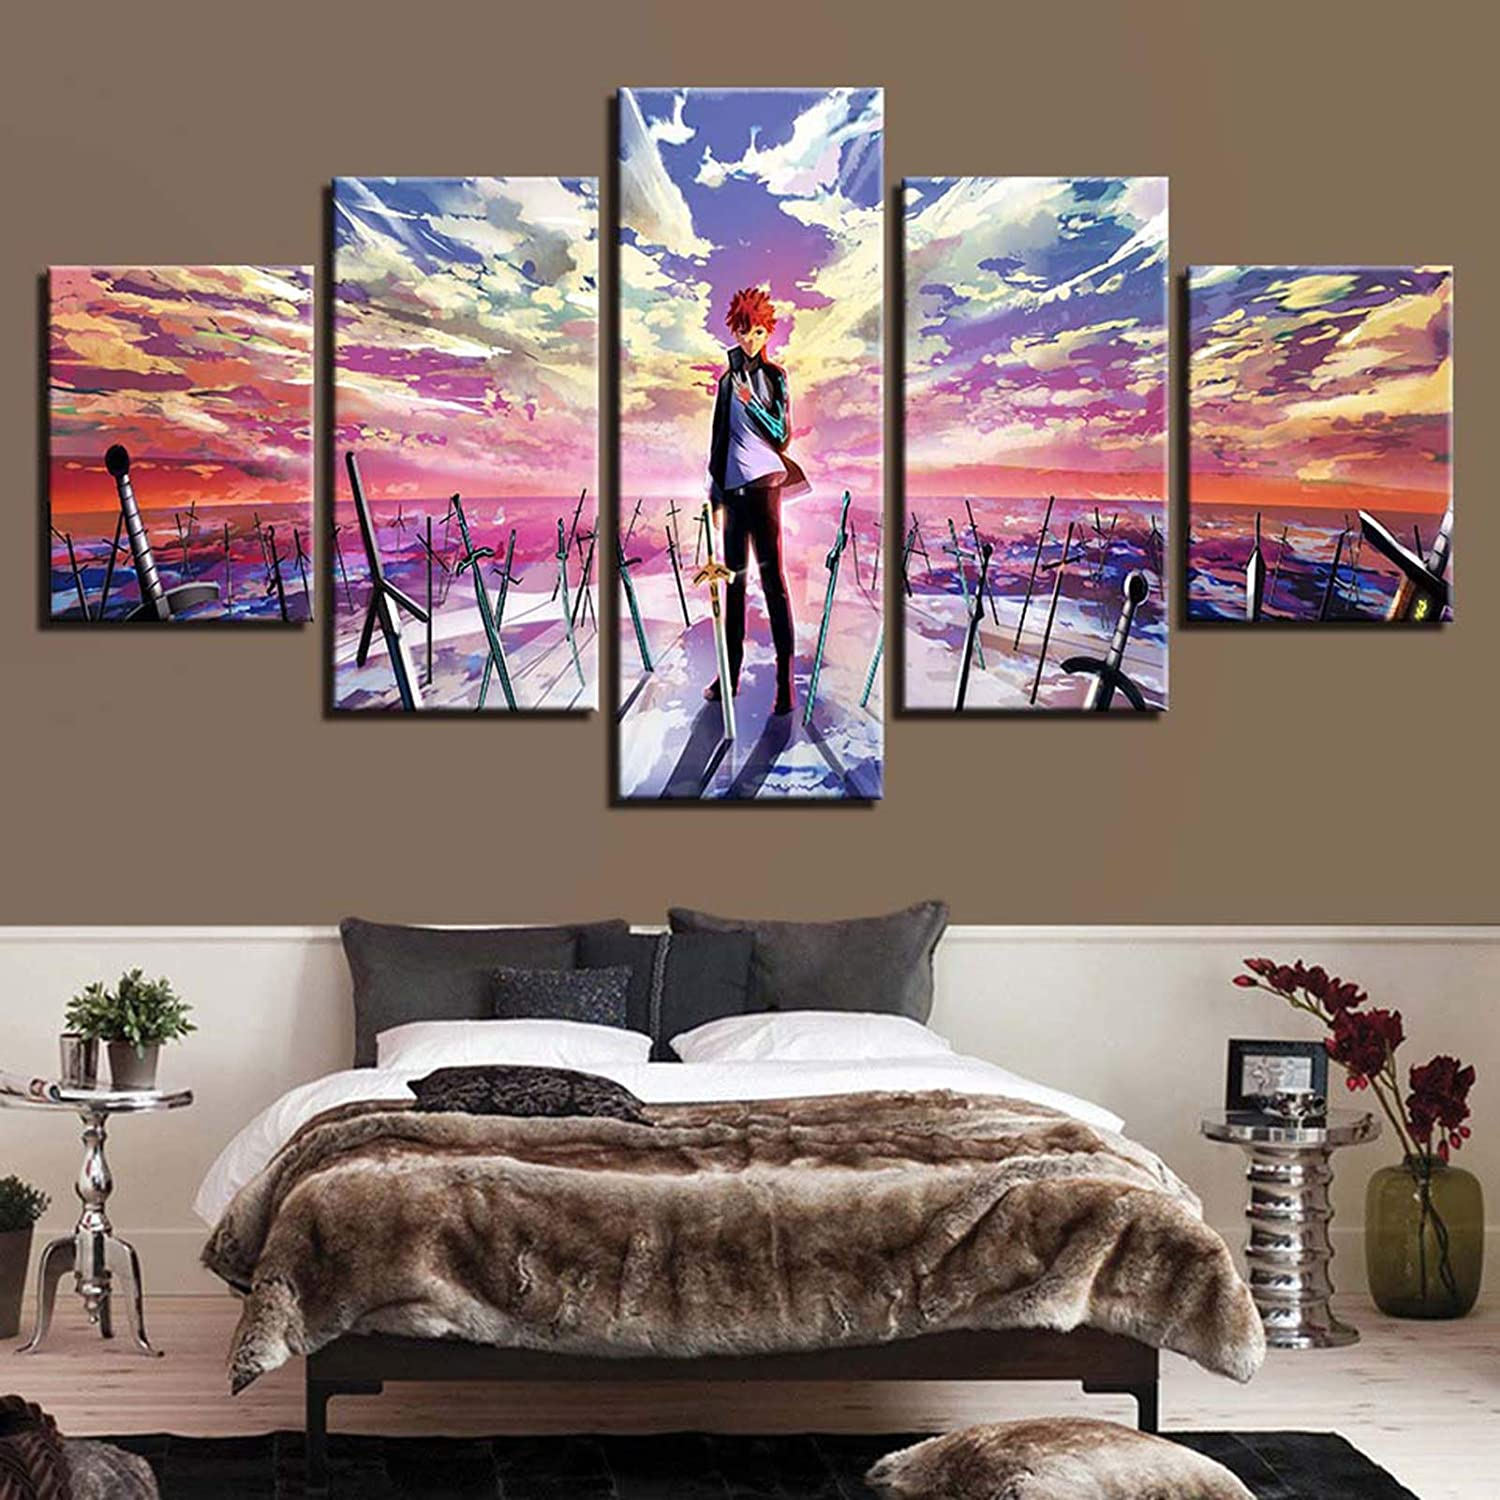 QININQ Canvas Printed Wall Art Picture Artwork 5 Pieces Anime Full Metal Alchemist Edward Elric for Home Decor Bedroom Painting Poster